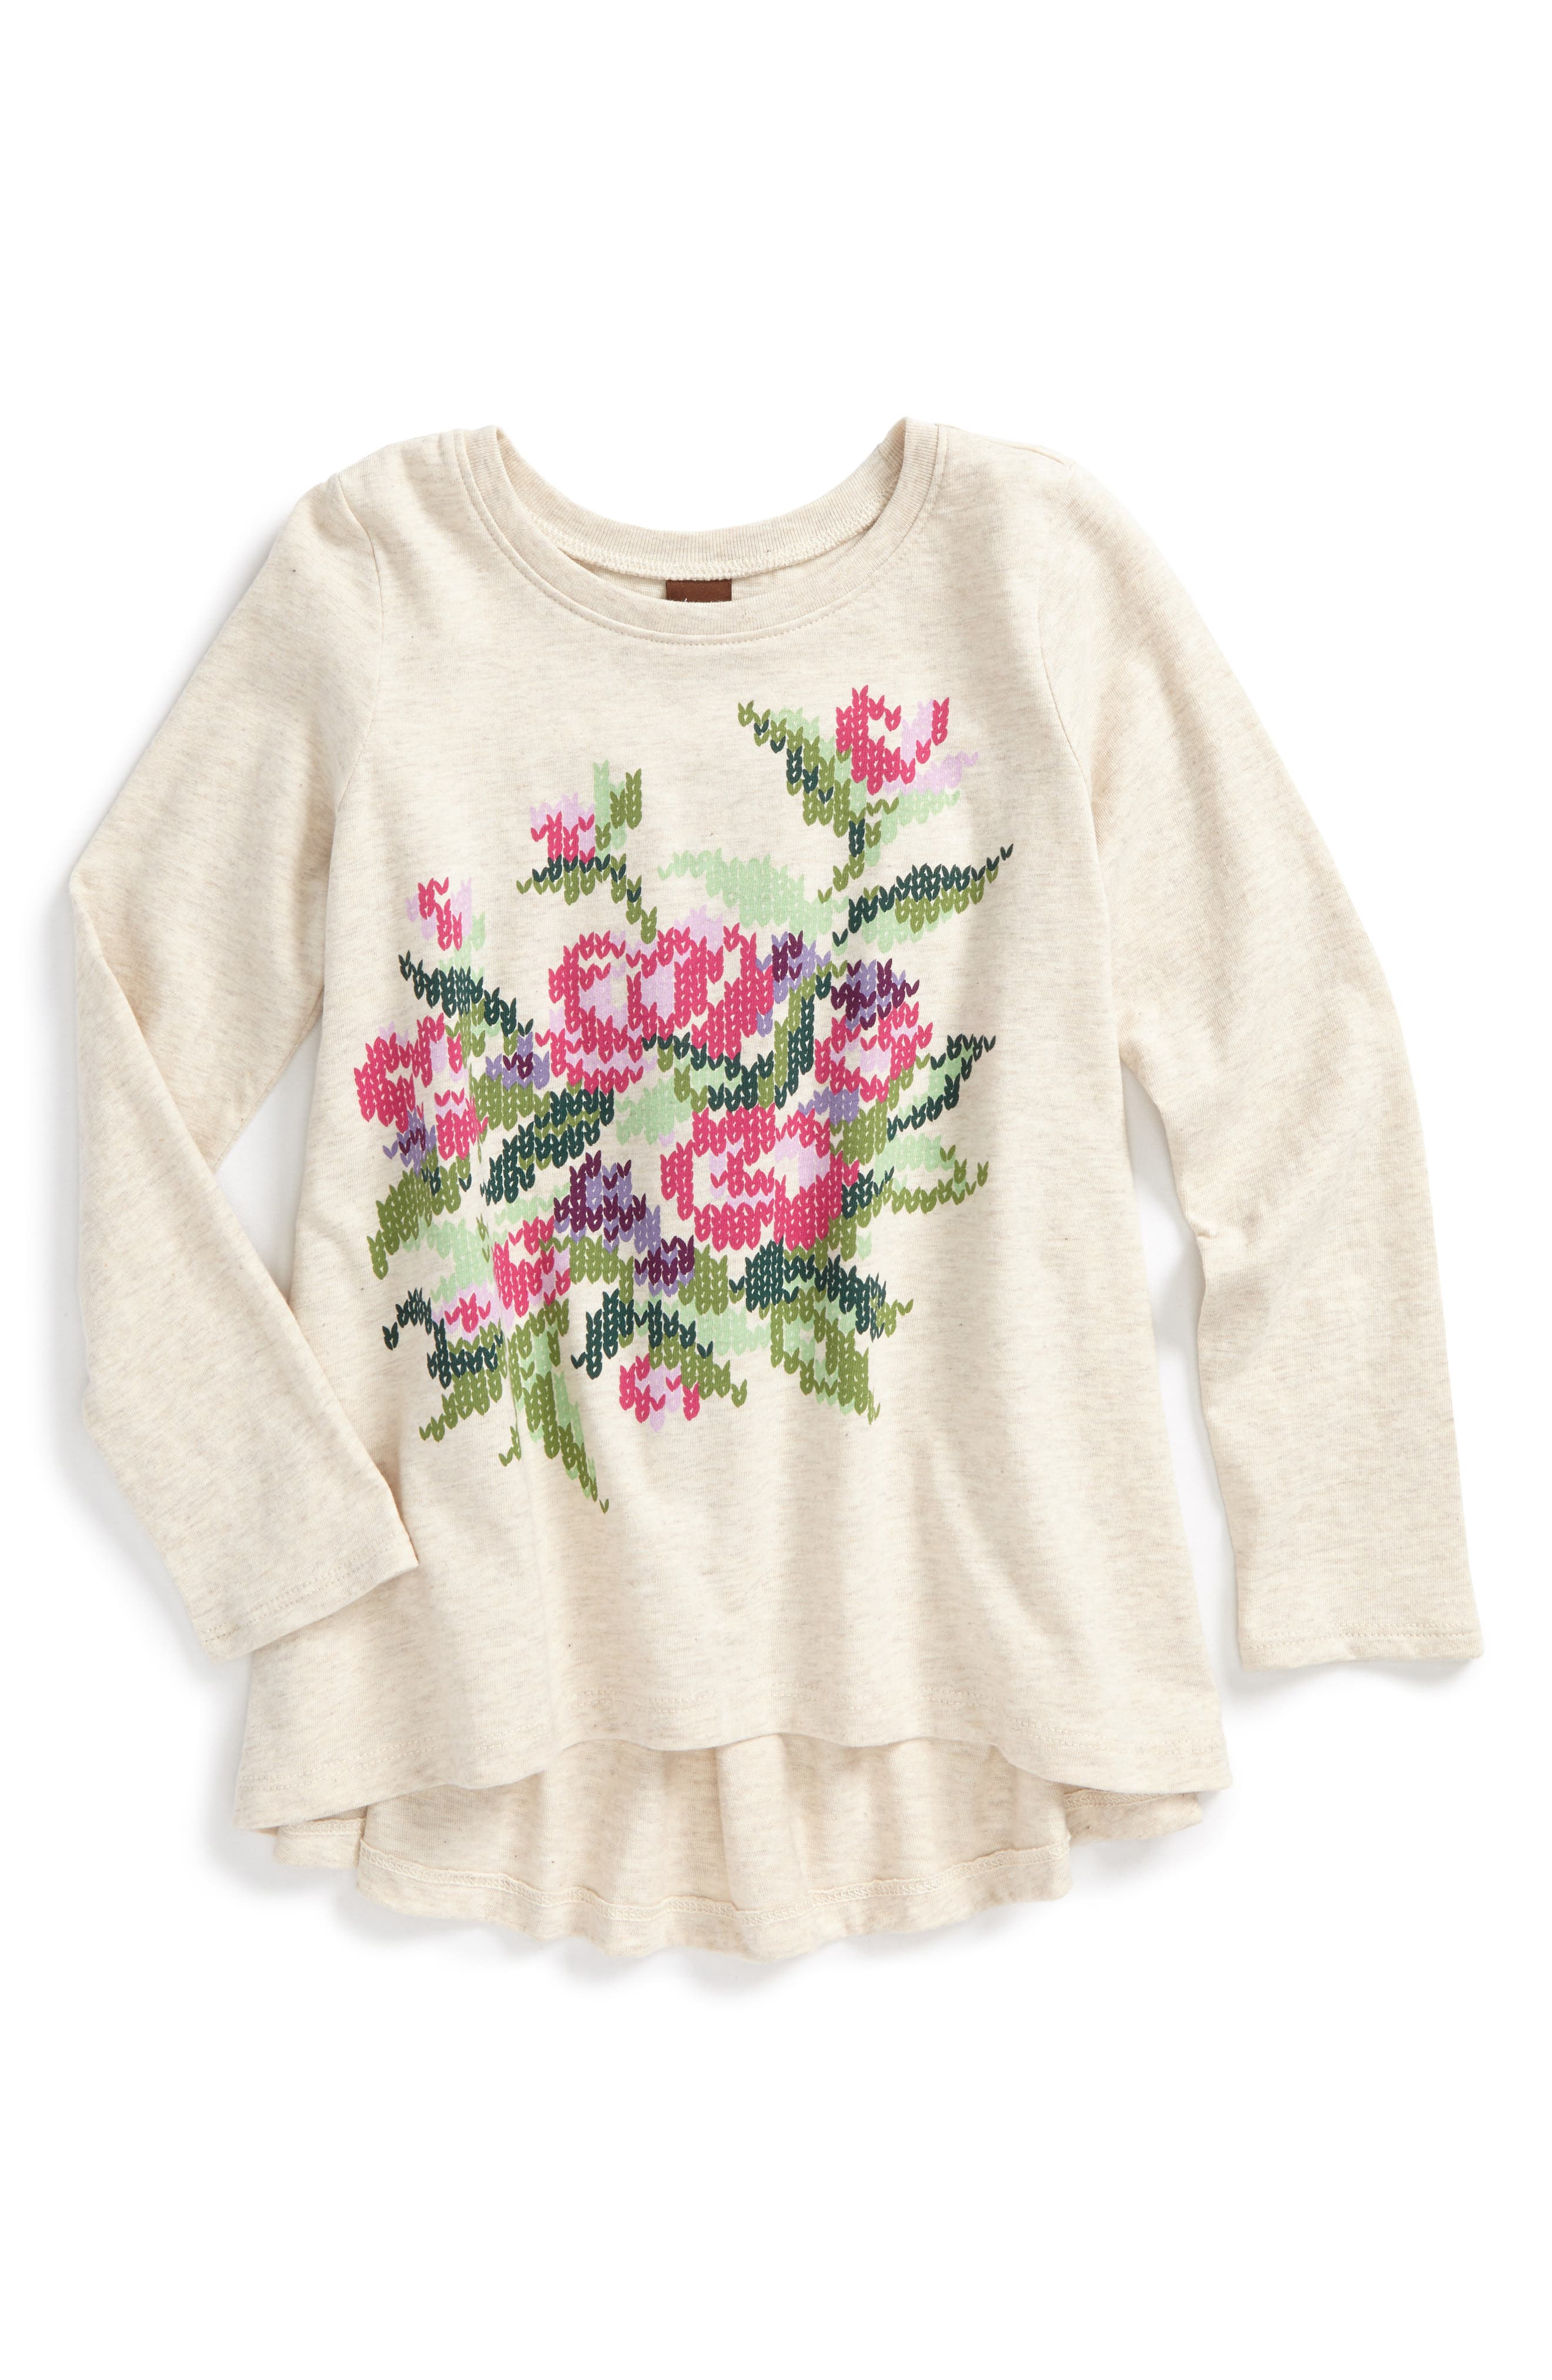 Alternate Image 1 Selected - Tea Collection Sweet Pea High/Low Tee (Toddler Girls, Little Girls & Big Girls)